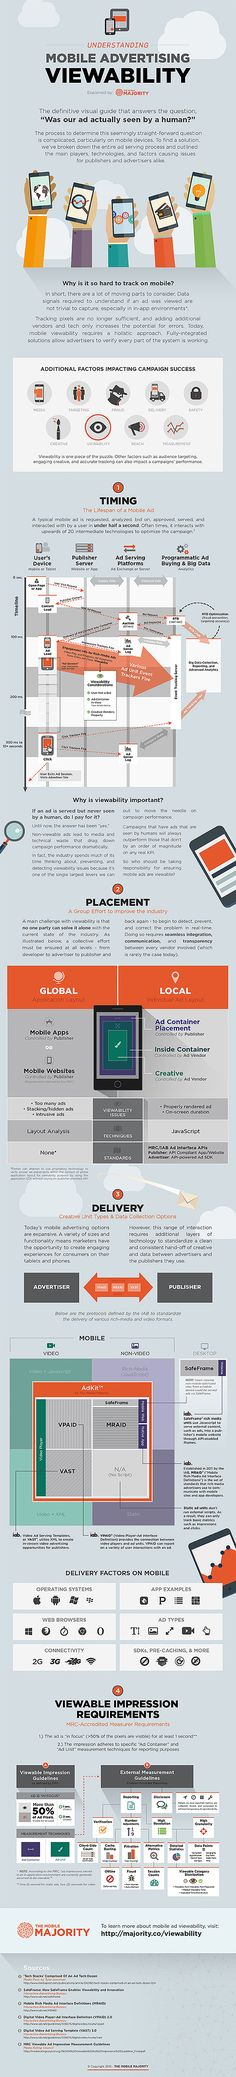 What Are 4 Steps To Make Sure Your Mobile Ad Is Viewed By A Human? #infographic